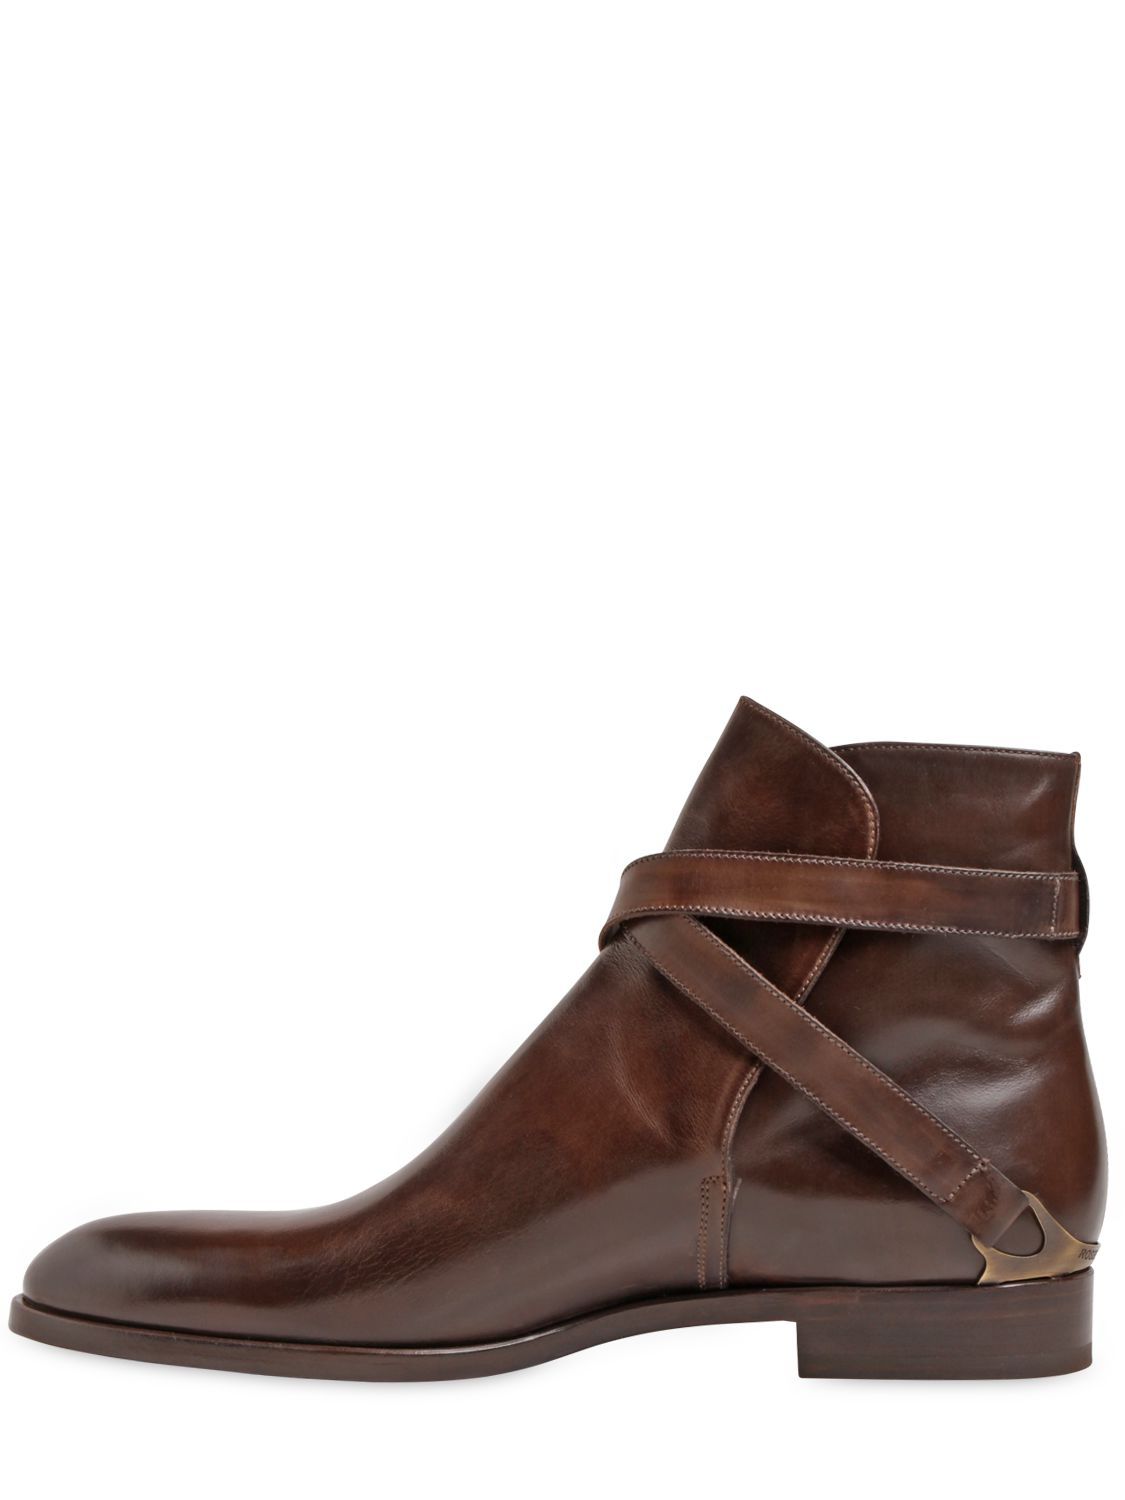 Fratelli Rossetti Leather Ankle Boots pKV22sGh